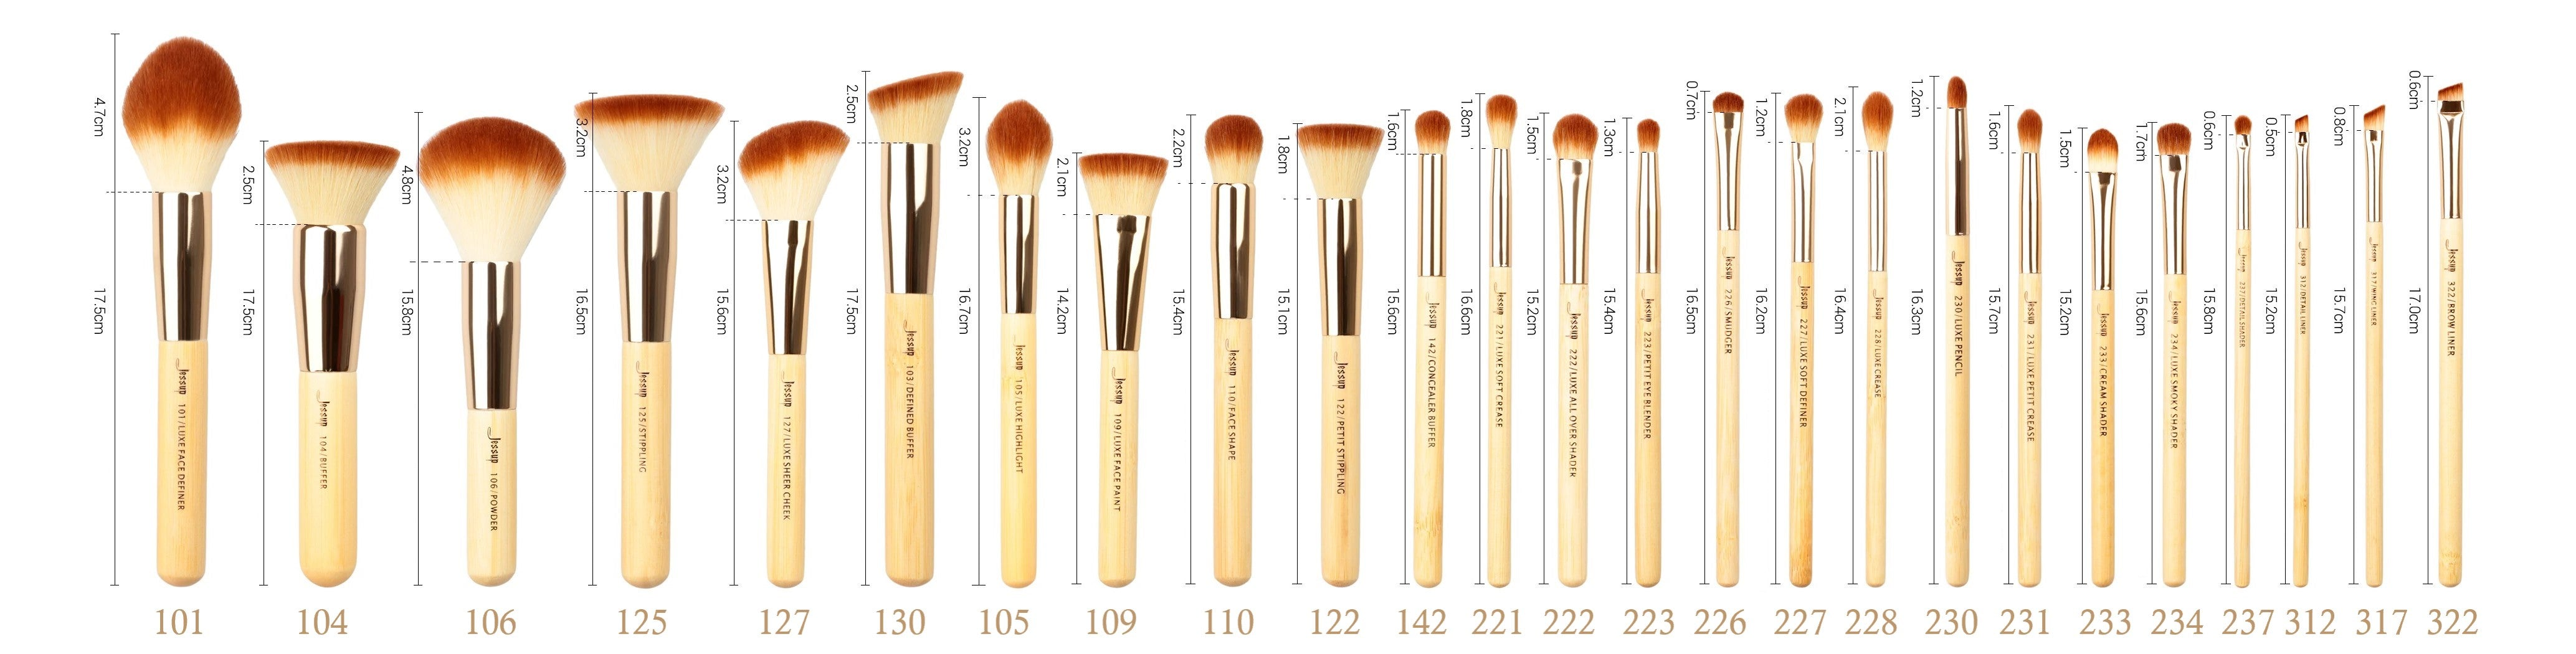 All 25 brushes shown with dimensions of handles and ends. Shown with product numbers.